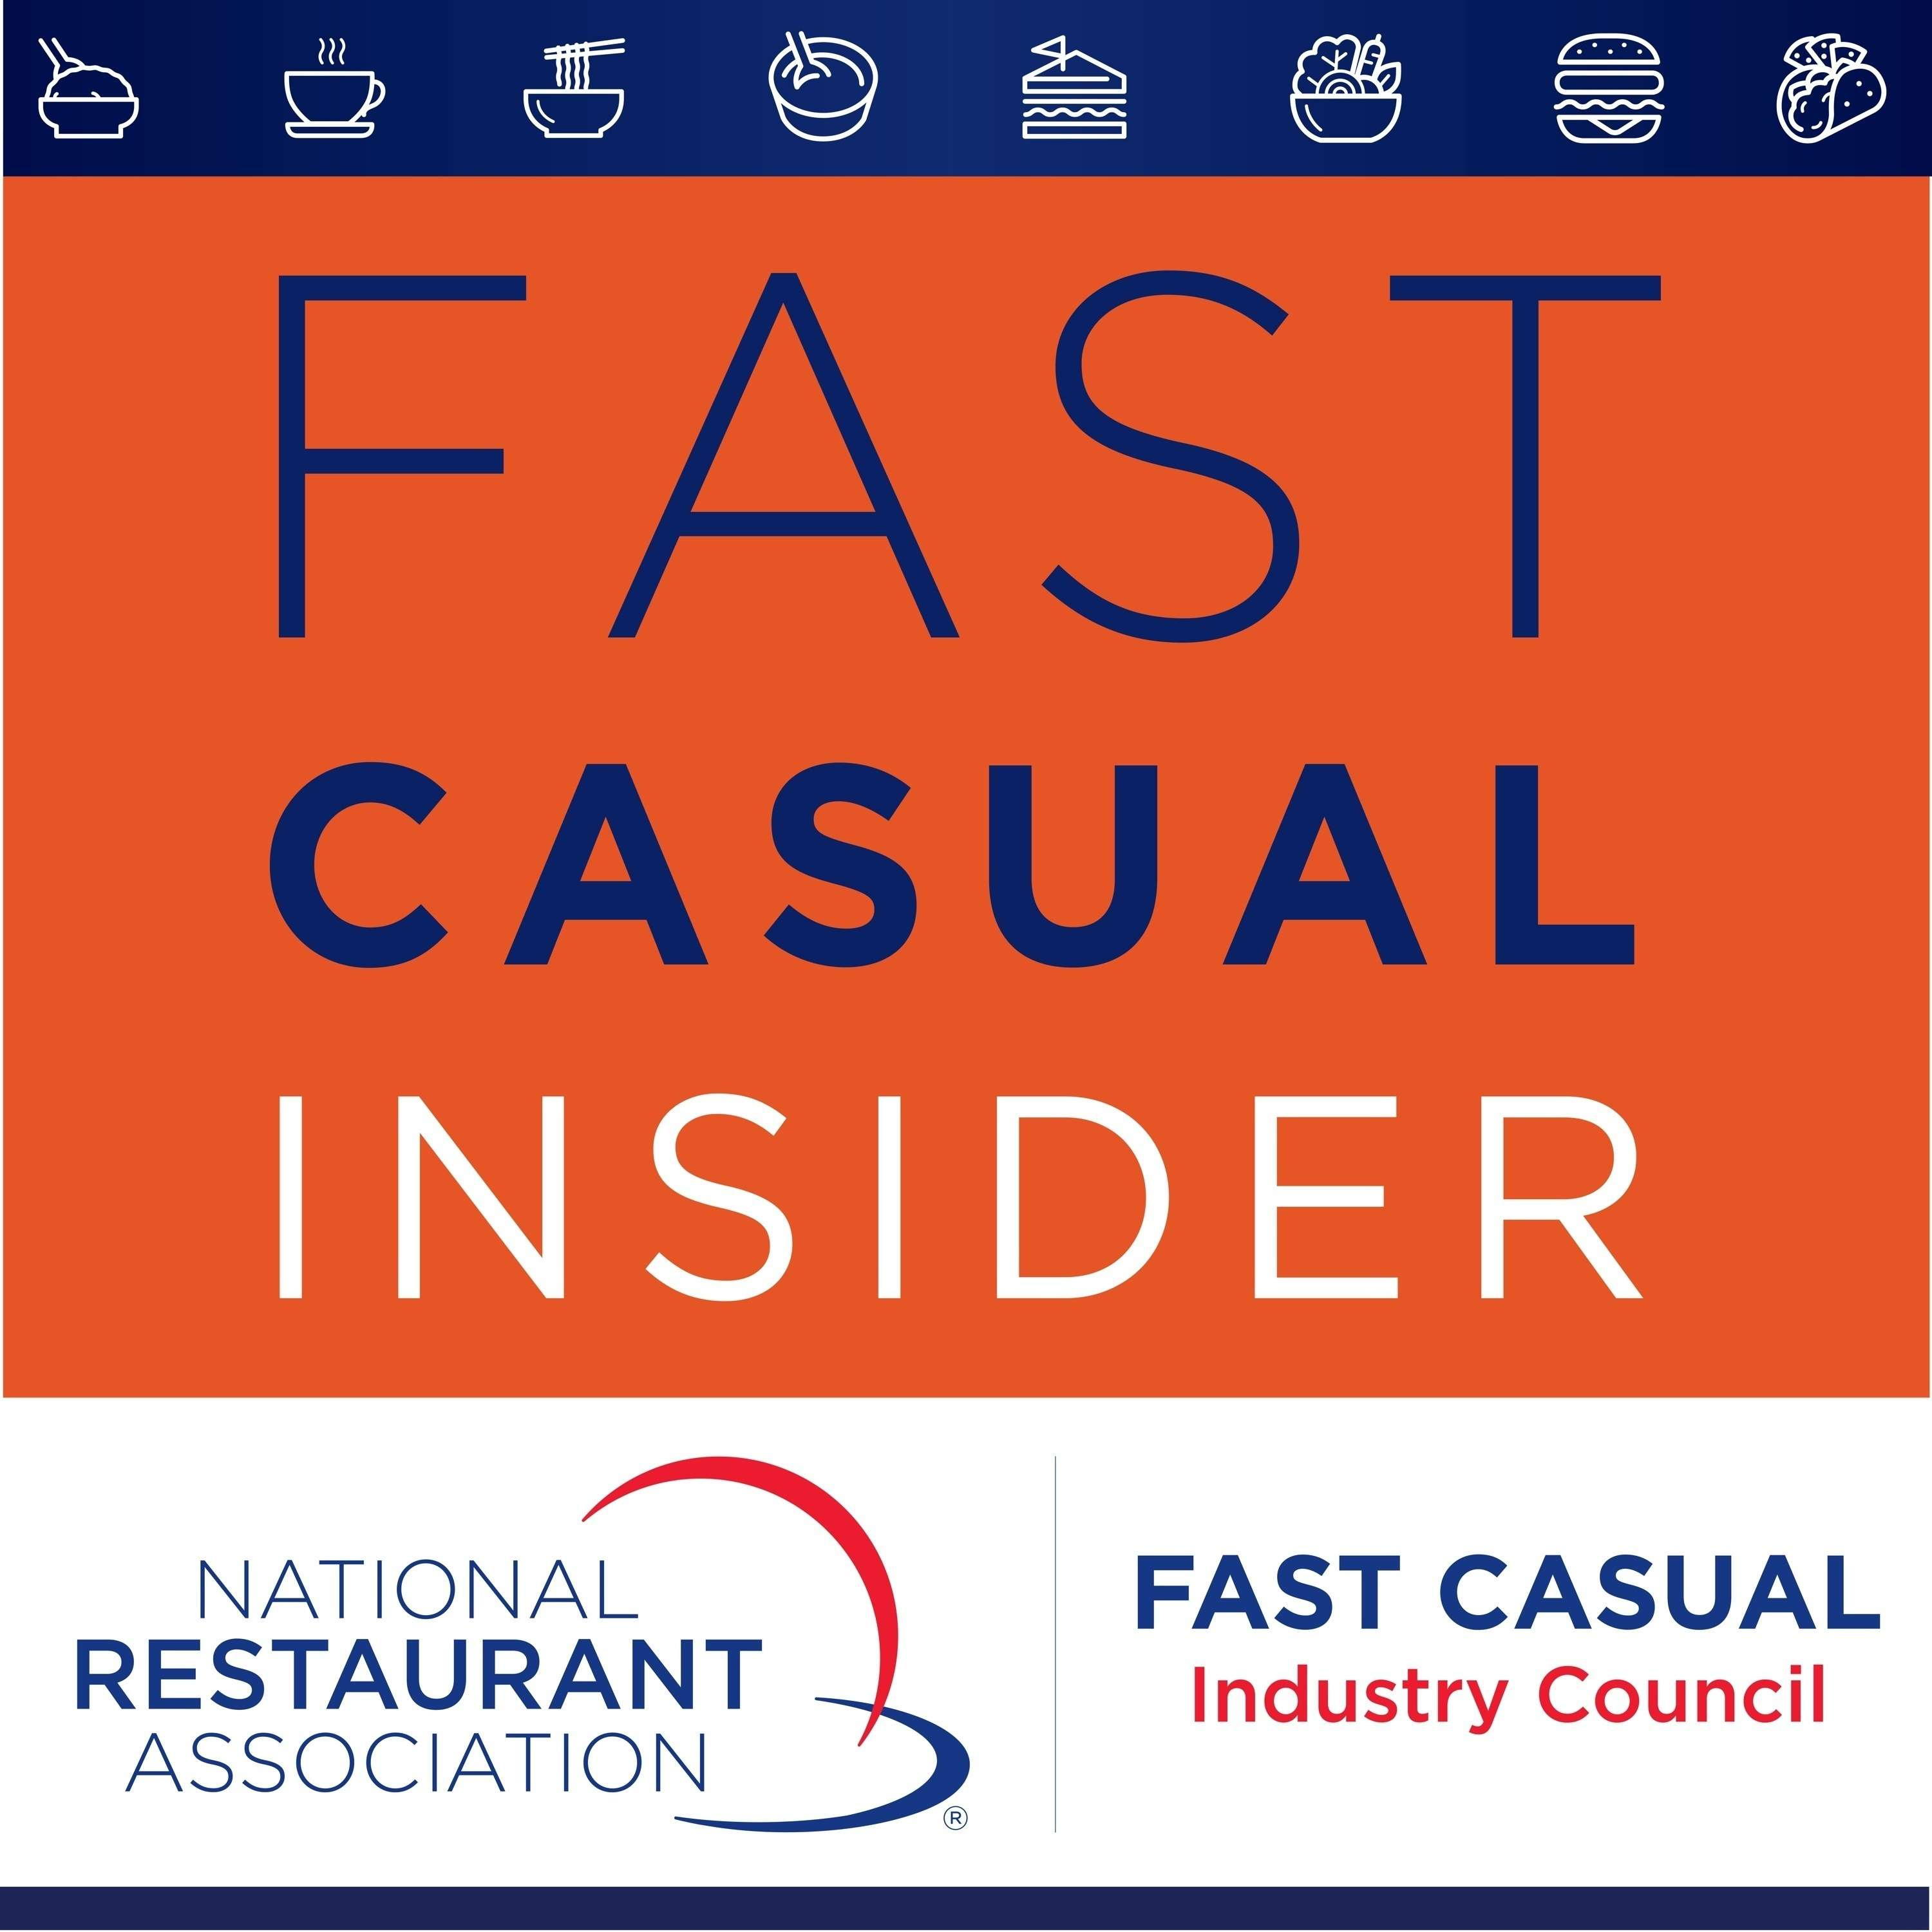 Welcome to the Fast Casual Insider!